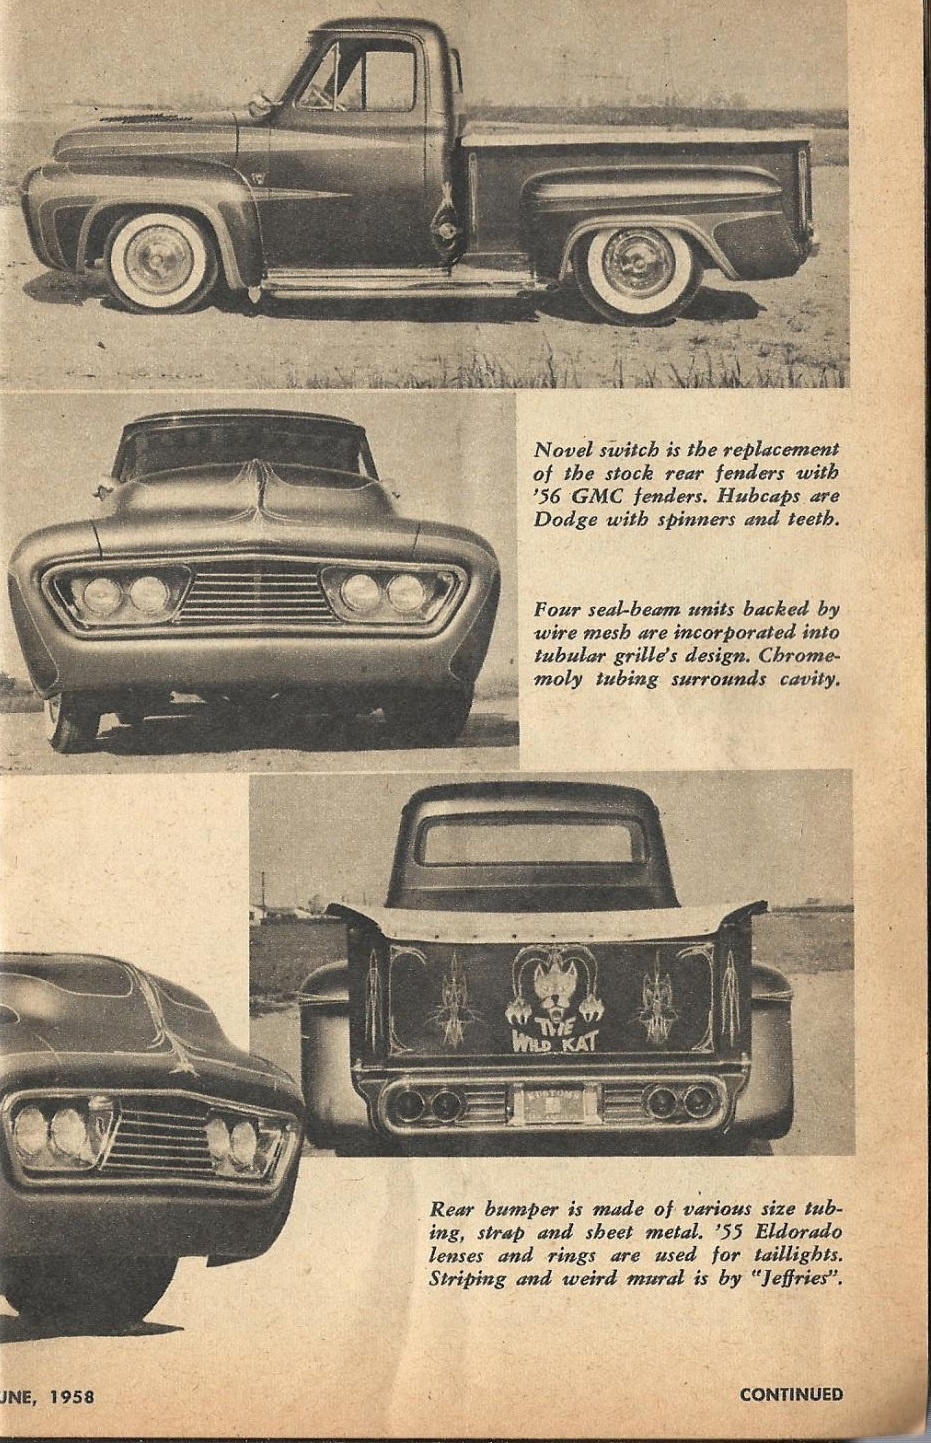 Car Craft - Special Pick Up June 1959 - Pick up Pictorial 1721